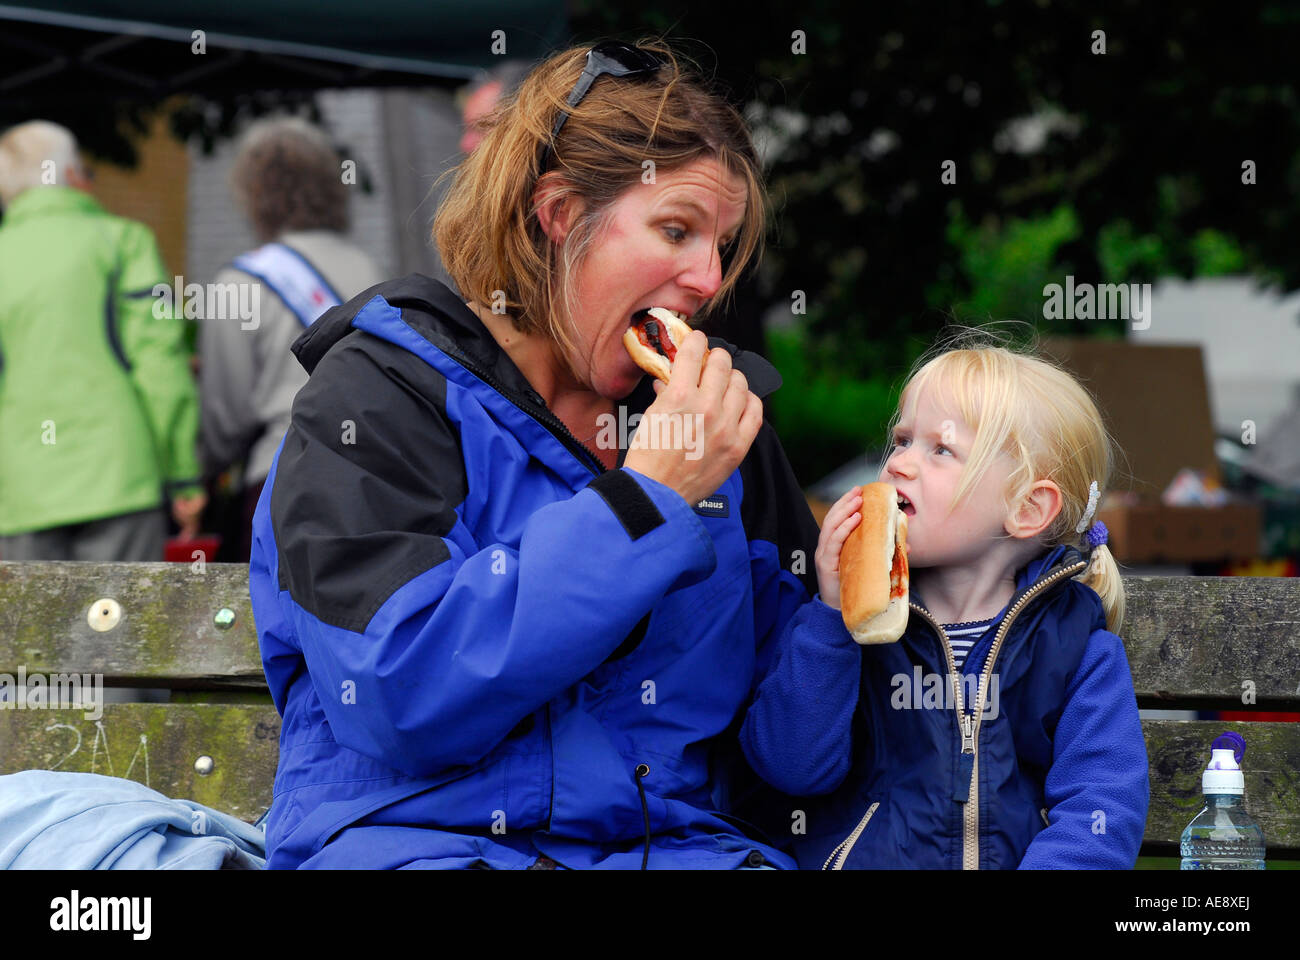 Mother and daughter at a river festival in Teddington Middlesex UK - Stock Image